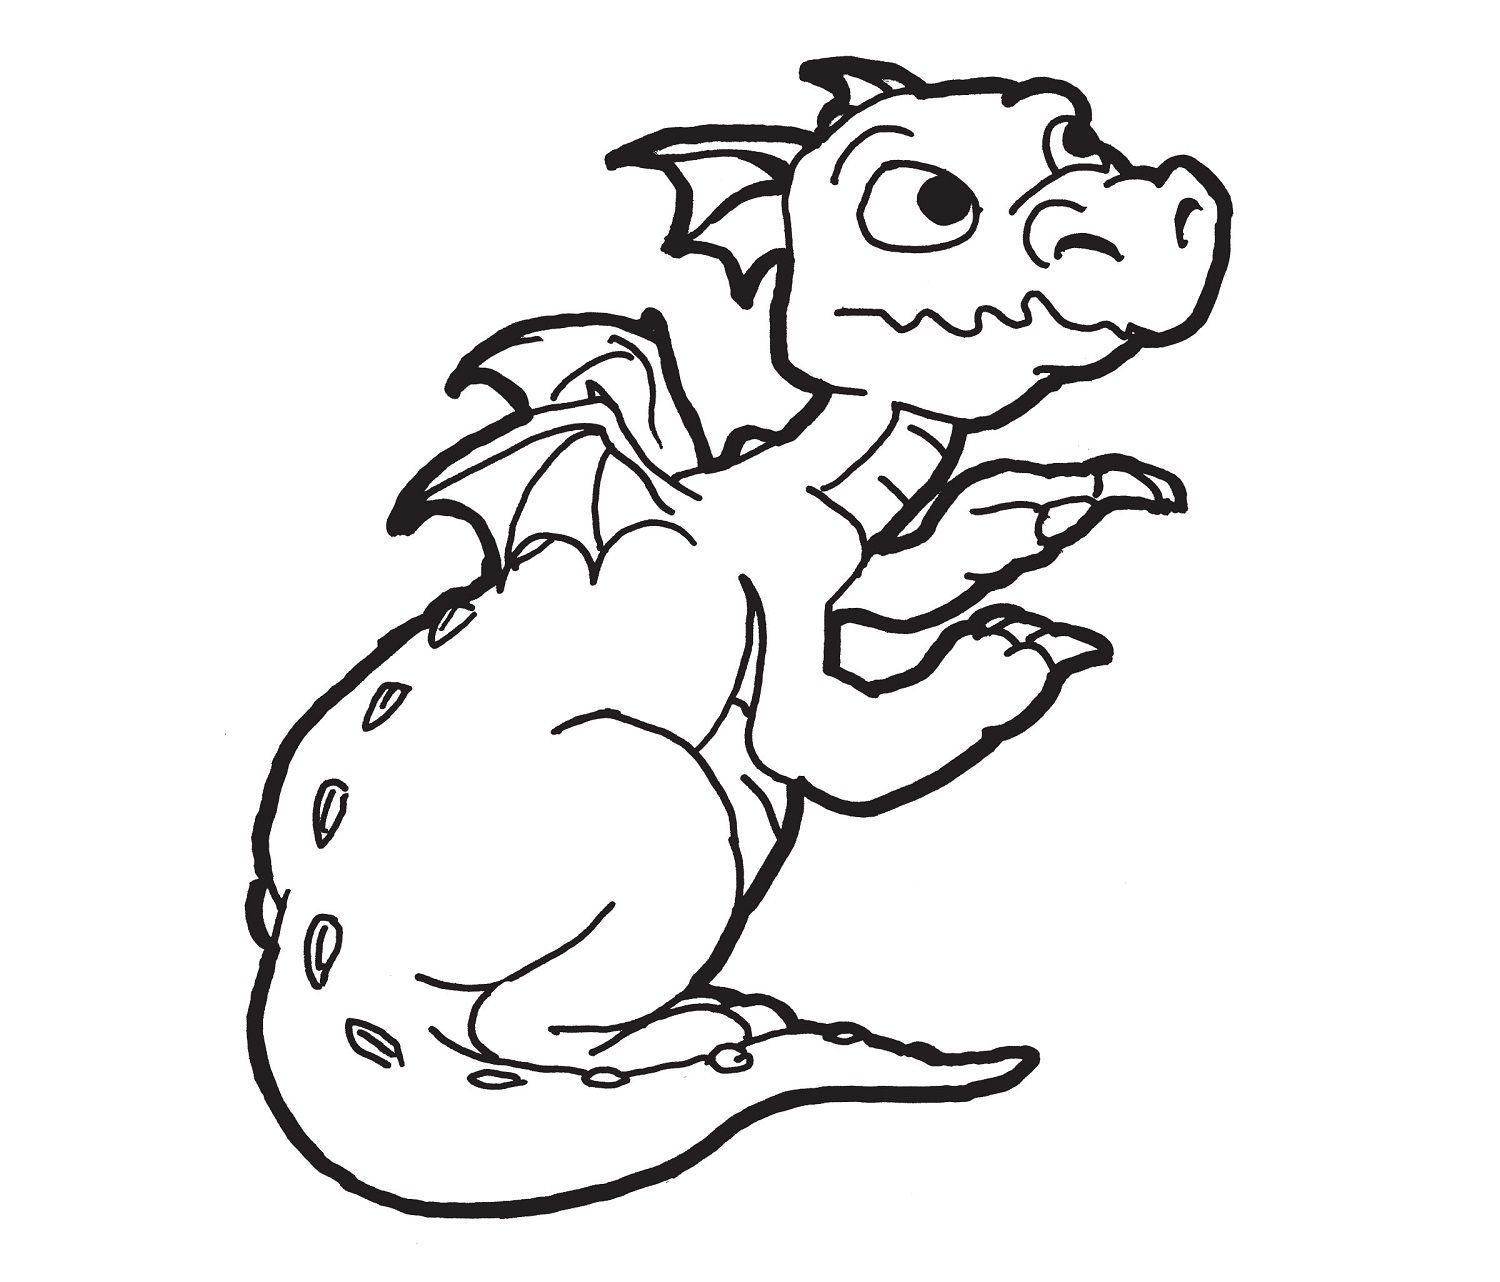 Dragon Coloring Pages for Fun Coloring   Kids Activity Coloring ...